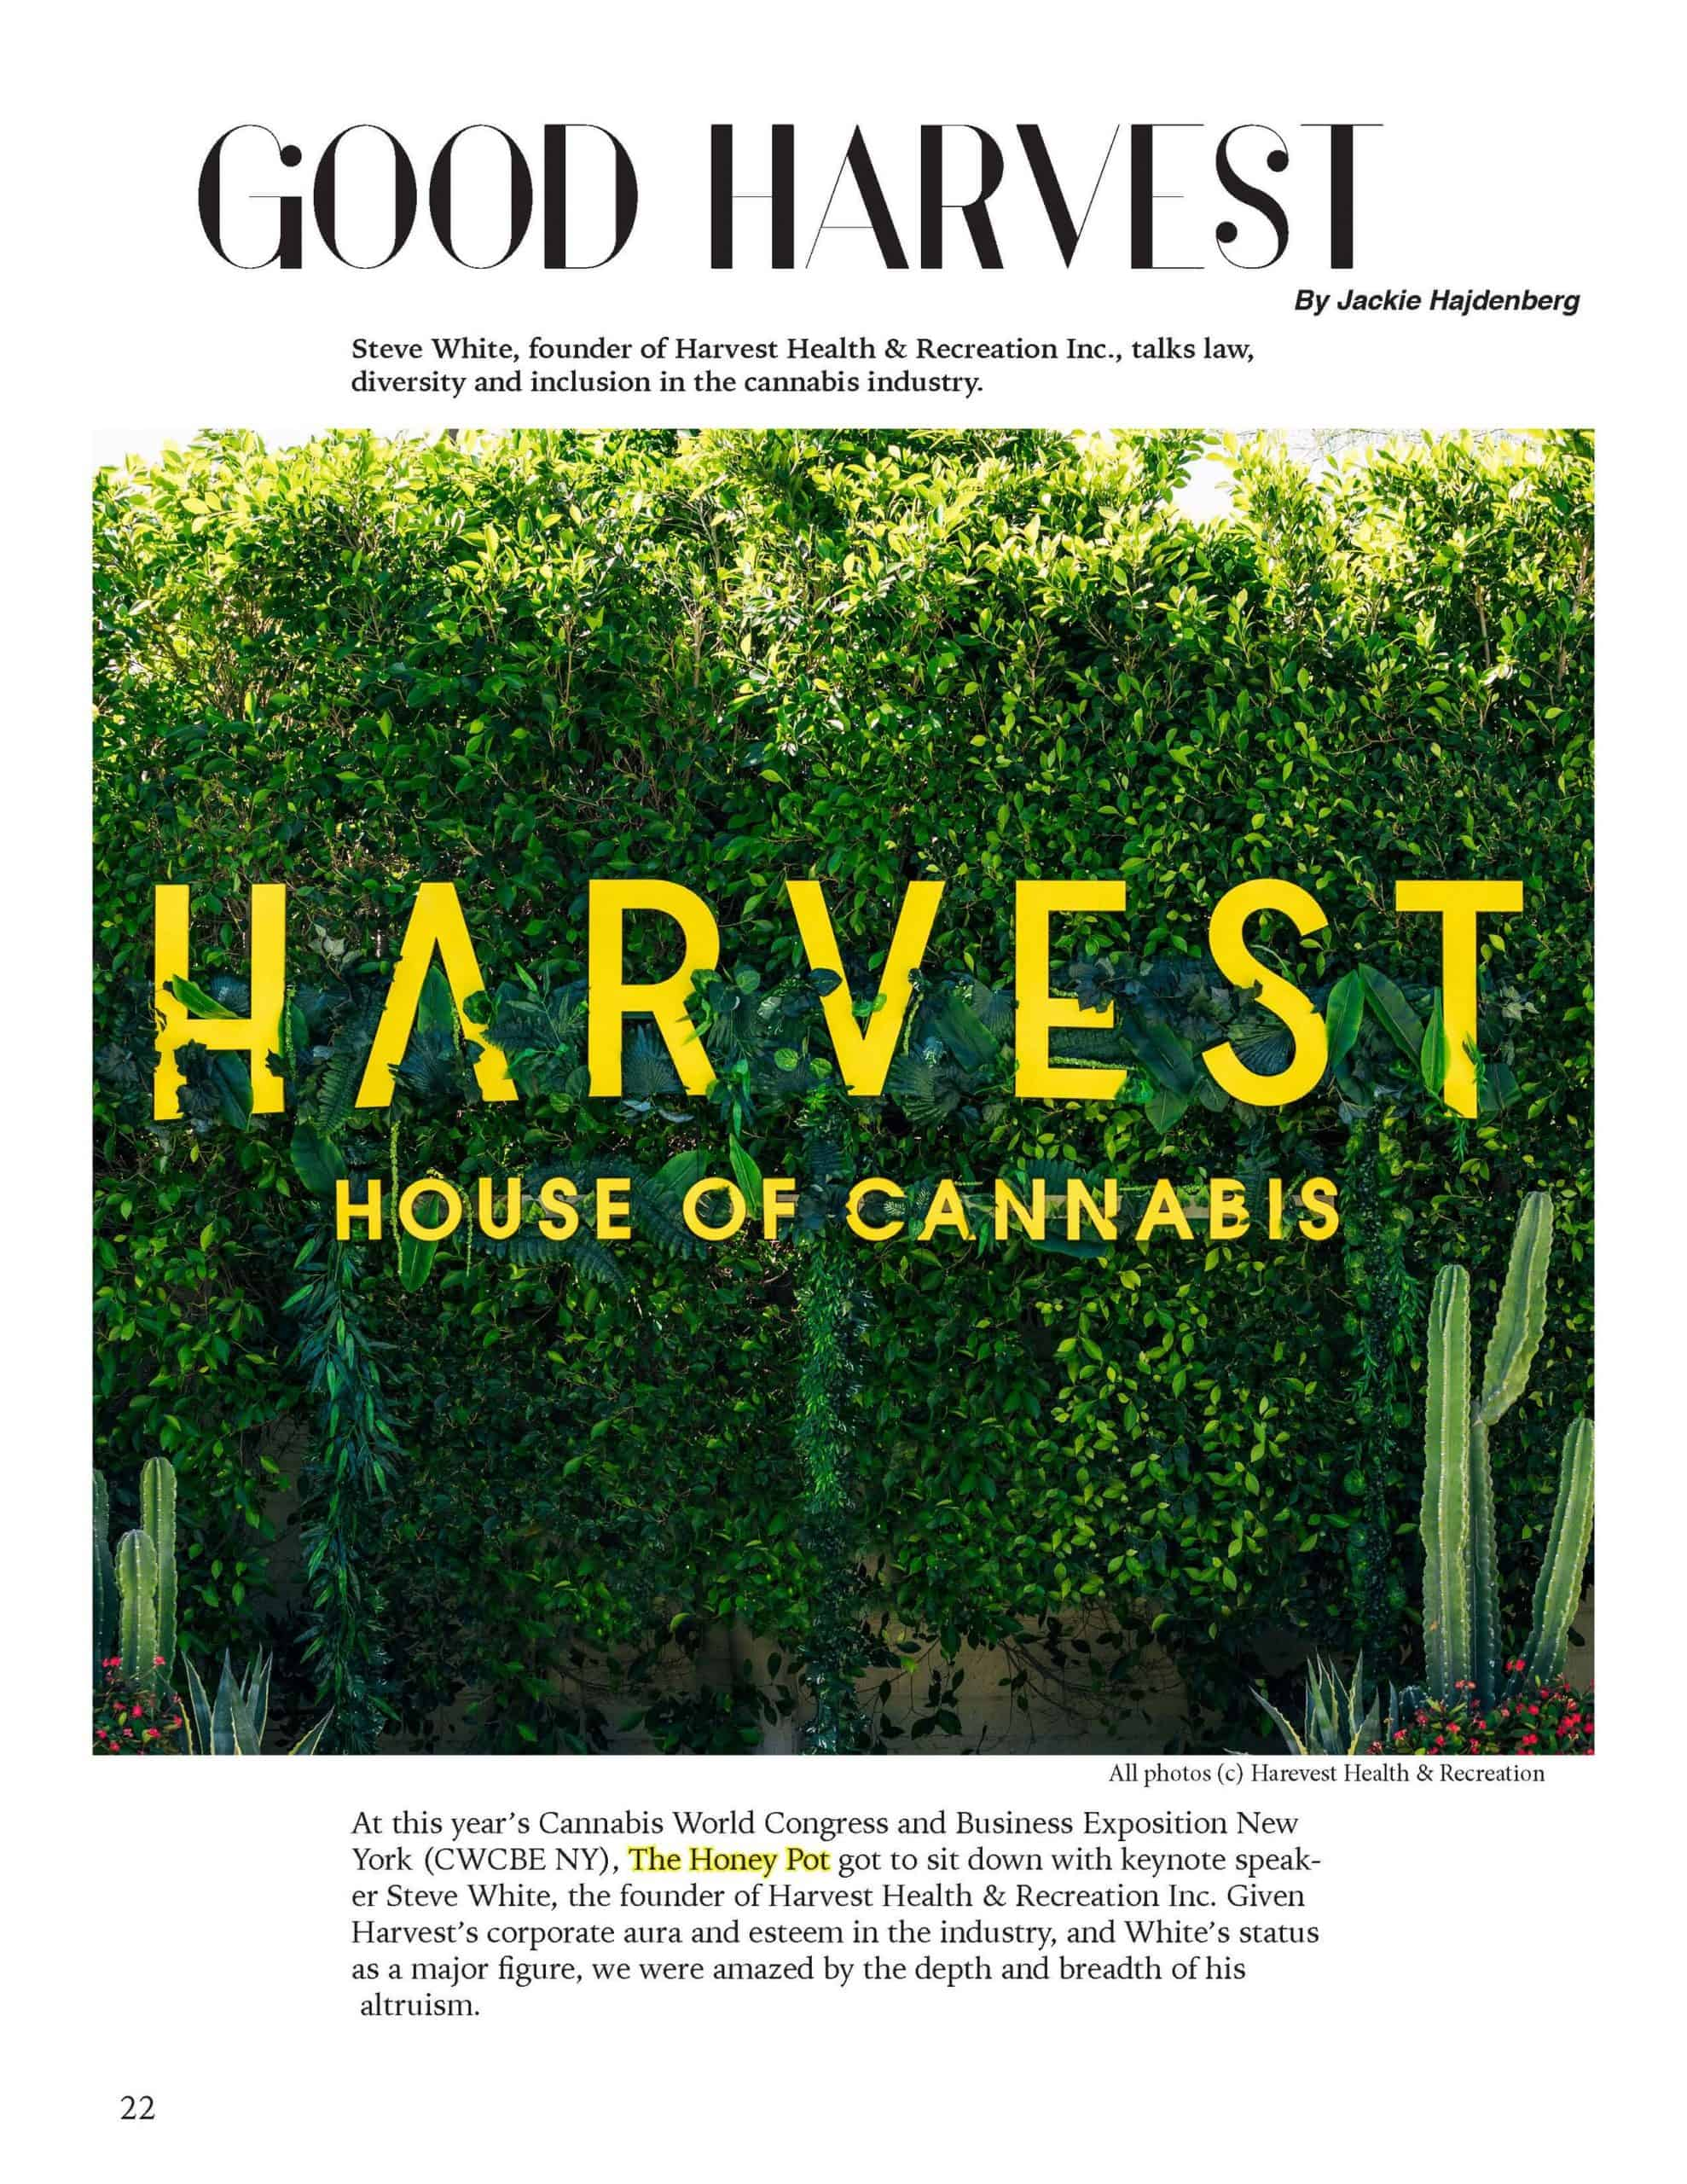 GOOD HARVEST: Steve White, founder of Harvest Health & Recreation Inc., talks law, diversity, and inclusion in the cannabis industry